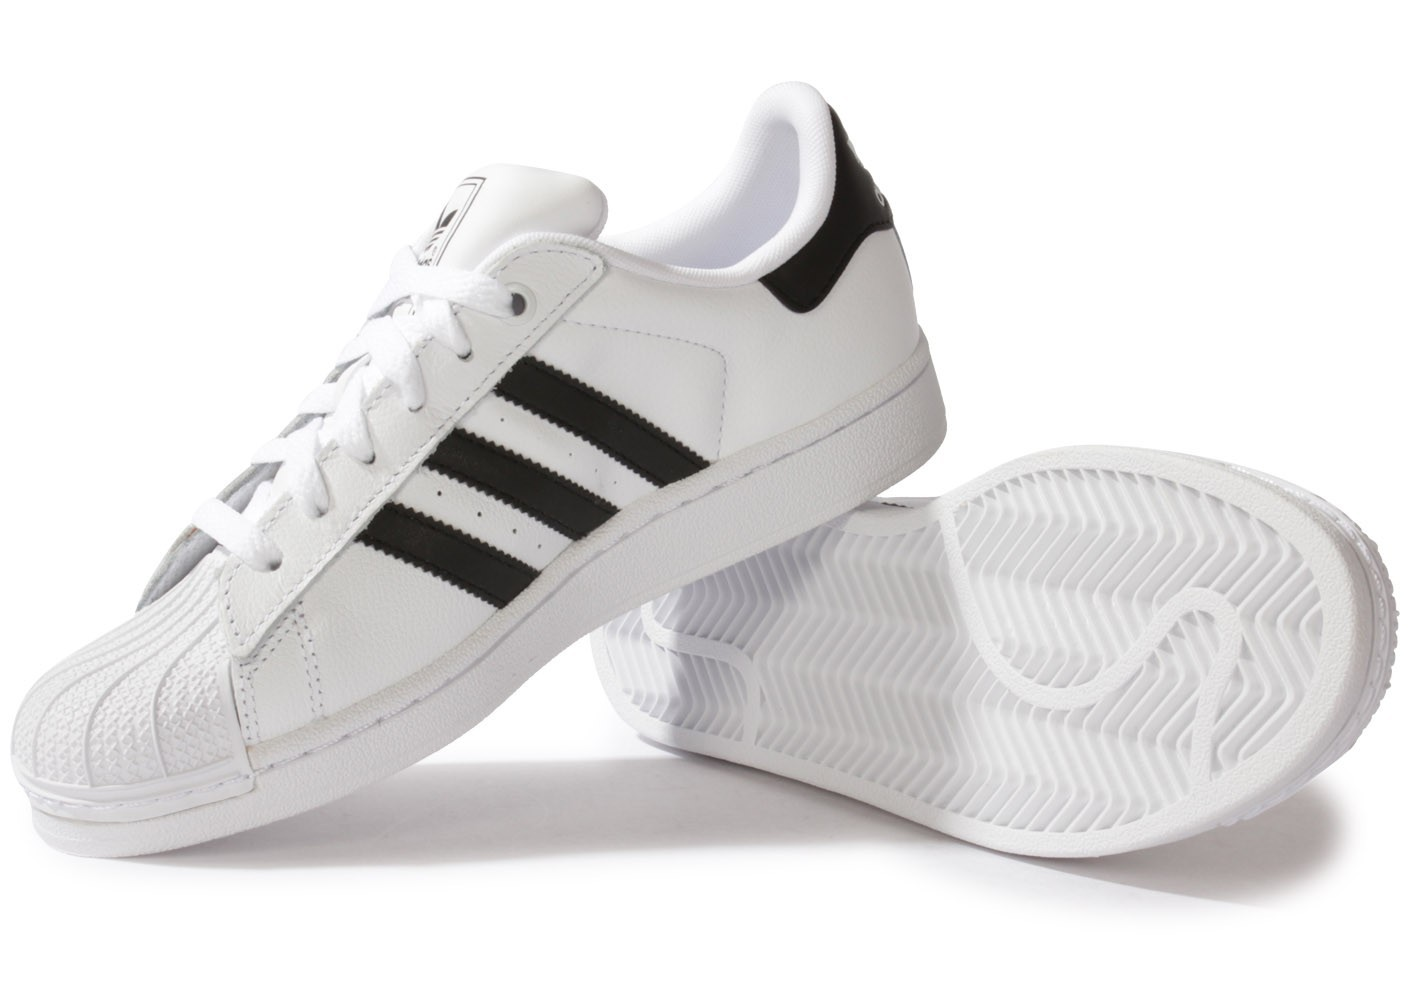 pas mal dc322 3abc6 Soldes Chaussures adidas superstar femme Pas Cher,Achat ...